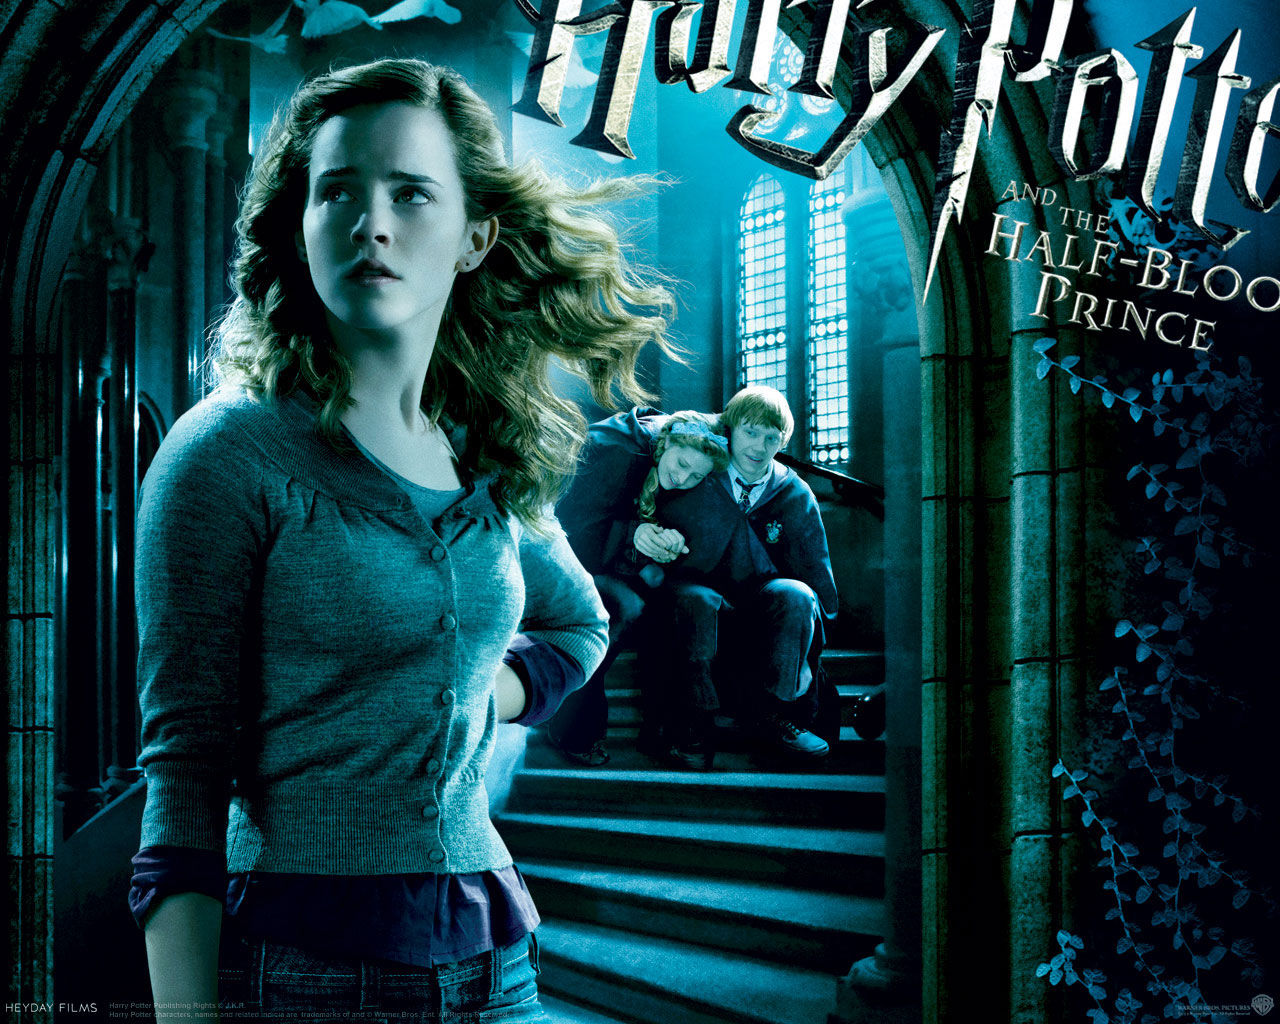 http://1.bp.blogspot.com/-YZxDTkVH2eg/Tz9UMYWoftI/AAAAAAAABw8/AjCopo-0rZs/s1600/harry_potter_and_the_half_blood_prince46.jpg